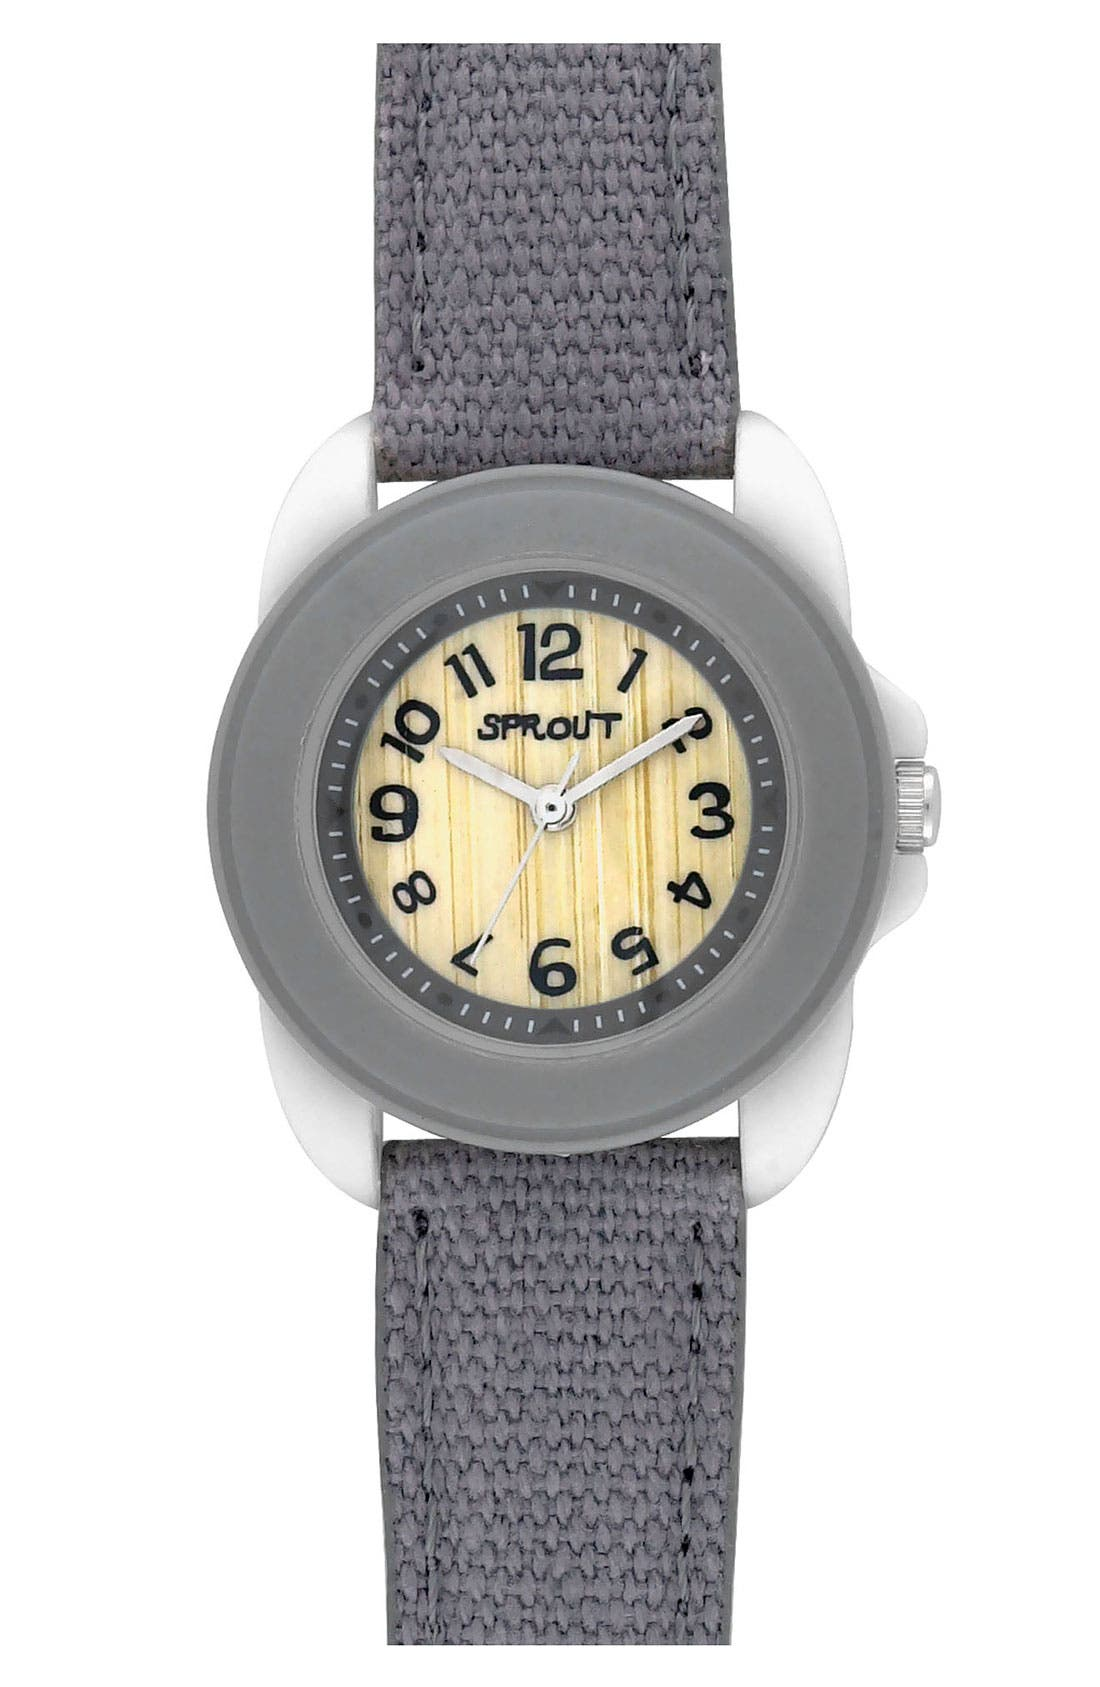 Main Image - SPROUT™ Watches Organic Cotton Strap Watch, 30mm